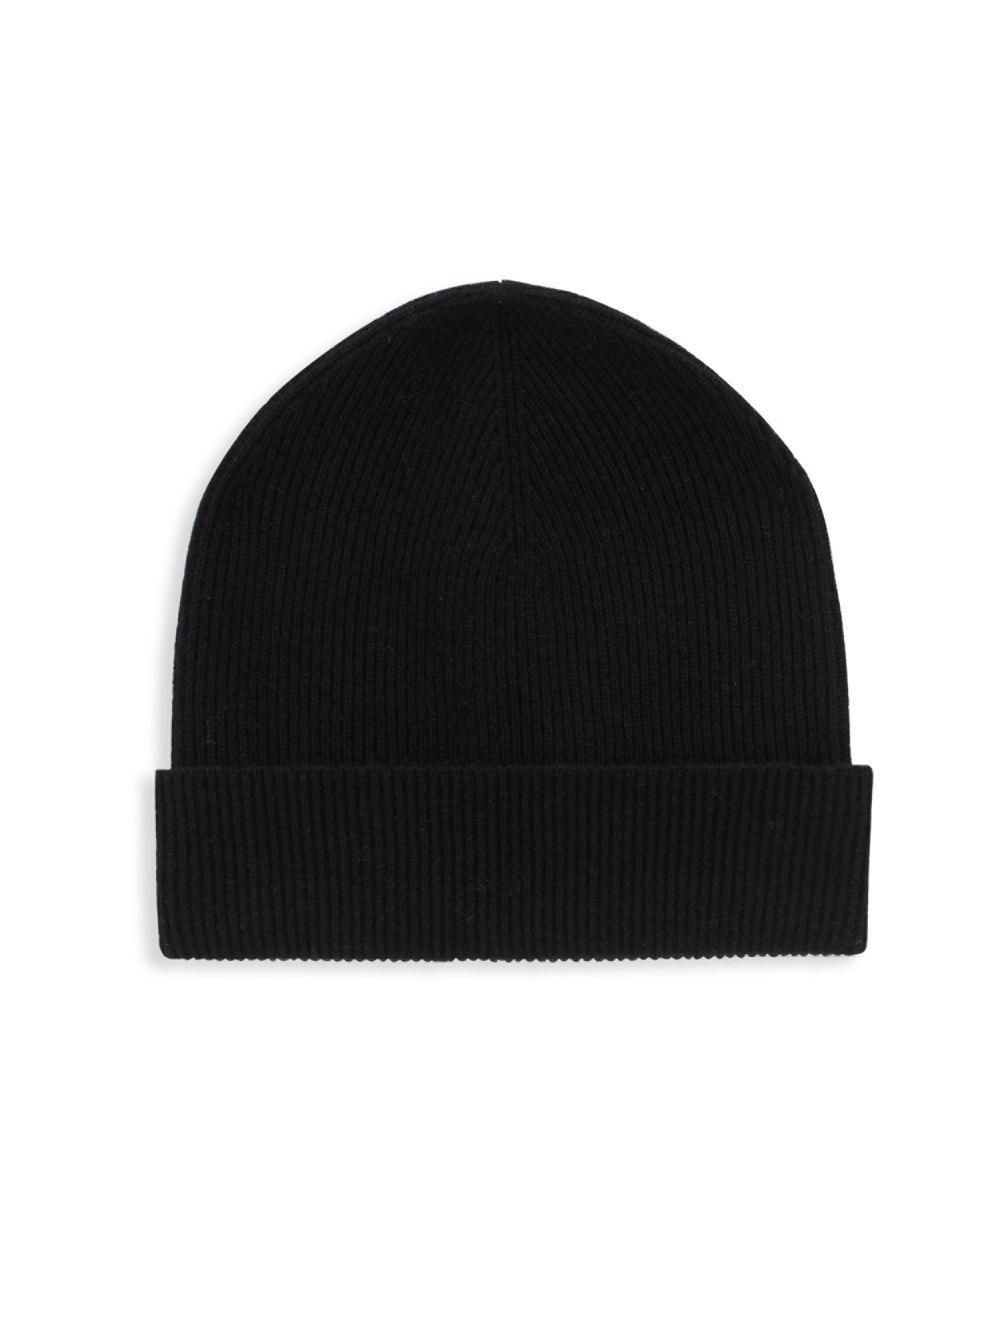 f76cf5b892b4f Lyst - Saks Fifth Avenue Cashmere Beanie in Black for Men